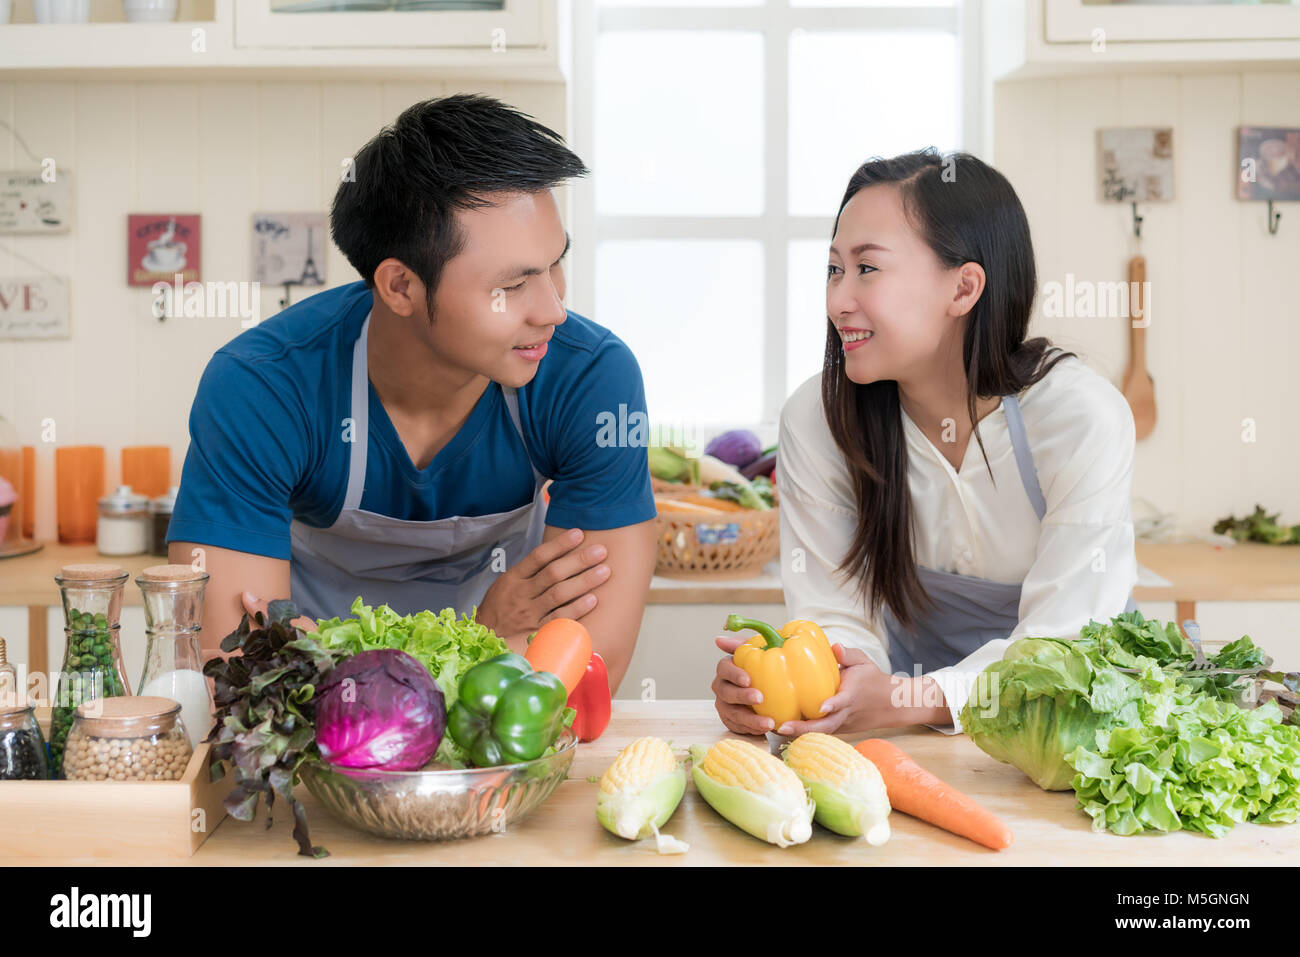 Young Asian couple preparing food together at counter in kitchen. Happy love couple concept. - Stock Image